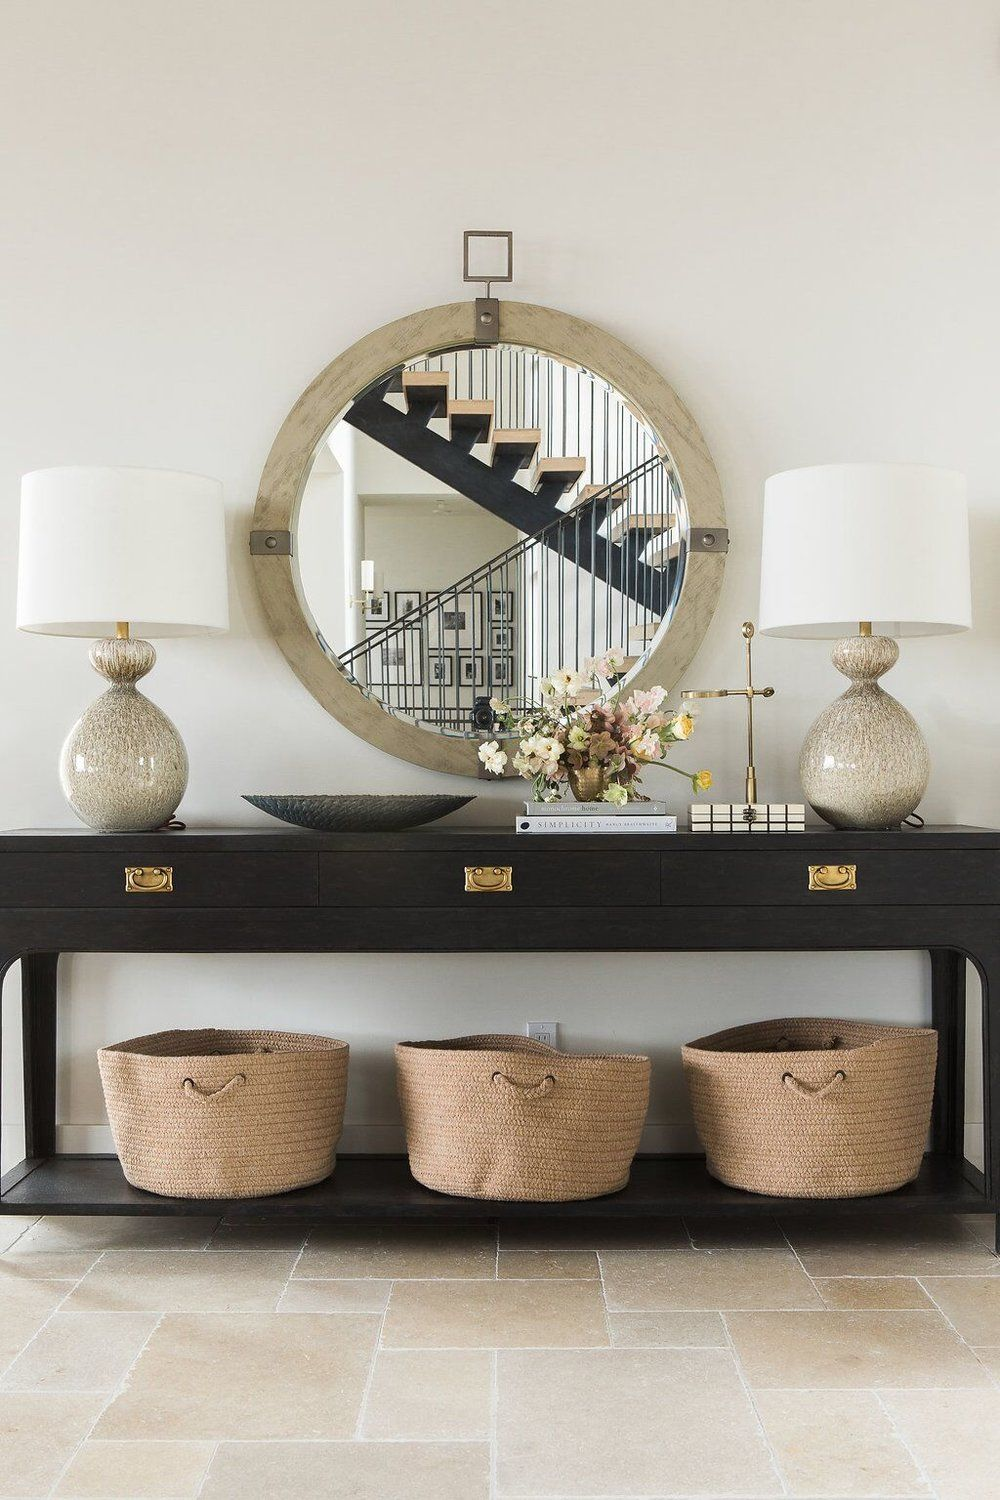 console table designs The best Console Table Designs for Your Entryway The best Console Table Designs for Your Entryway 6